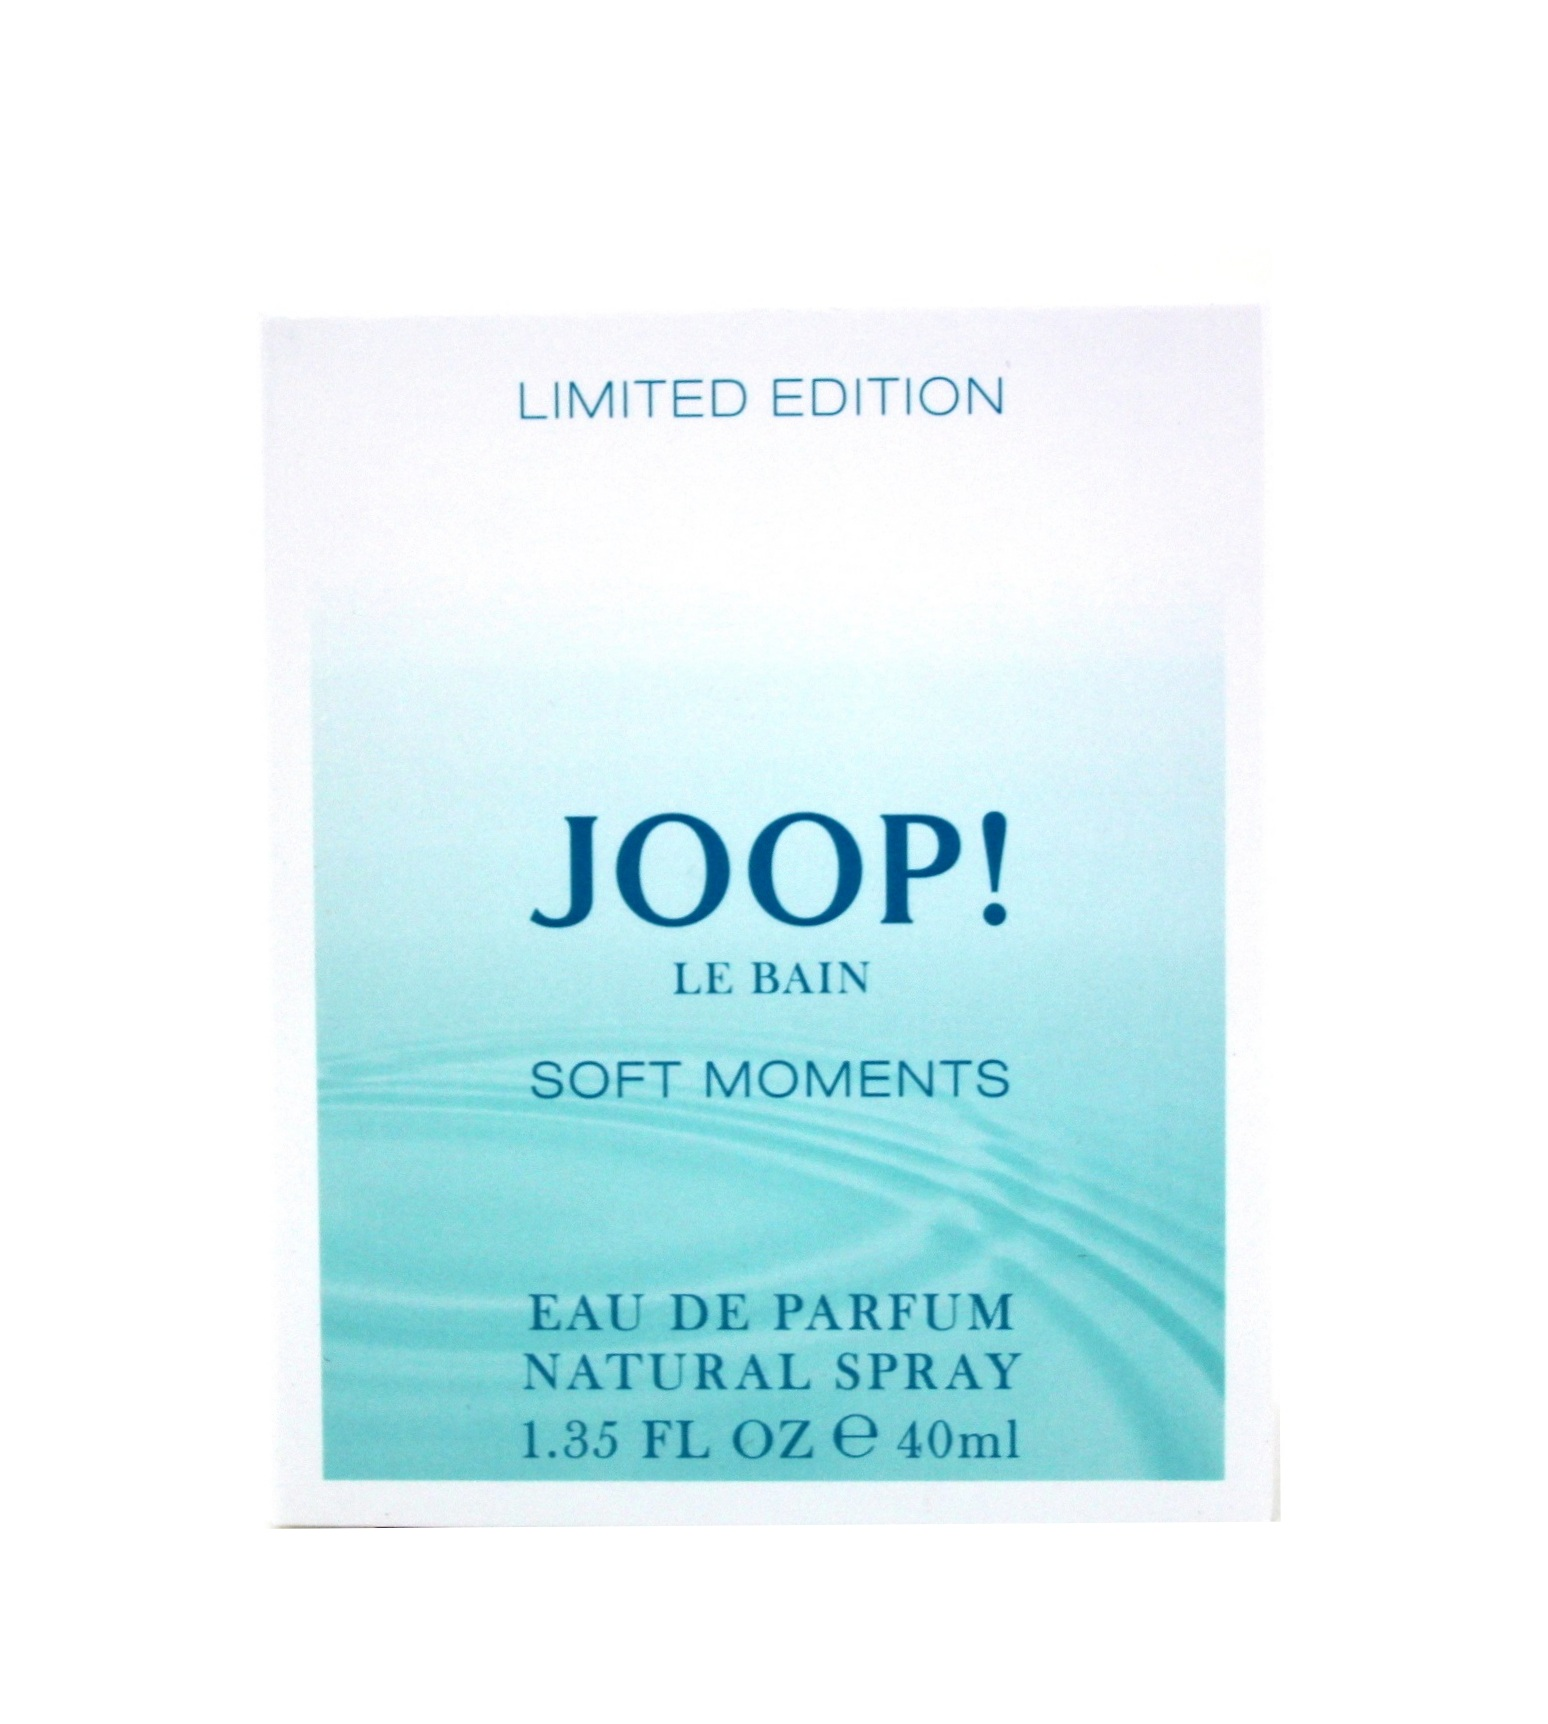 Joop! Le Bain Soft Moments Eau de Parfum